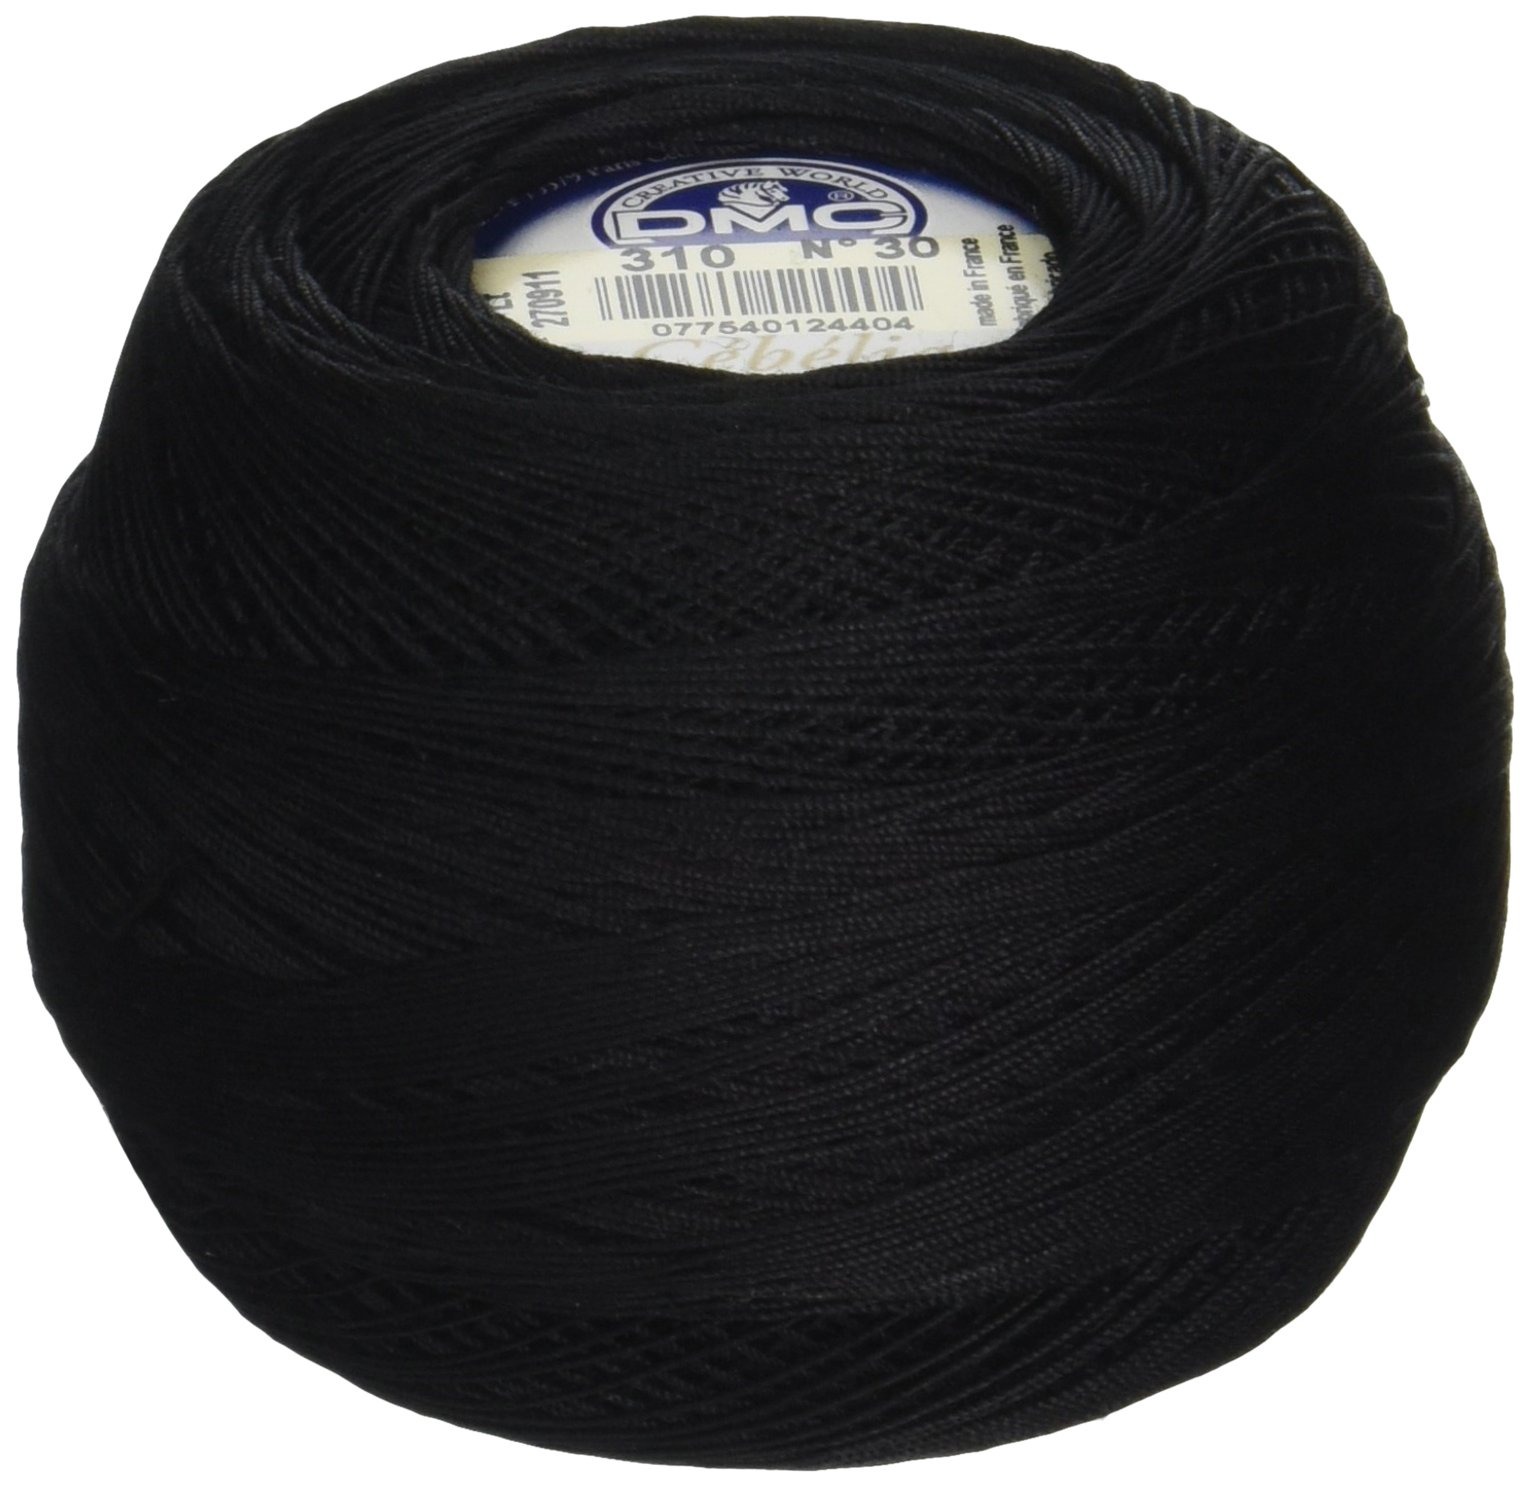 DMC 167GA 30-310 Cebelia Crochet Cotton, 563-Yard, Size 30, Black by DMC (Image #1)